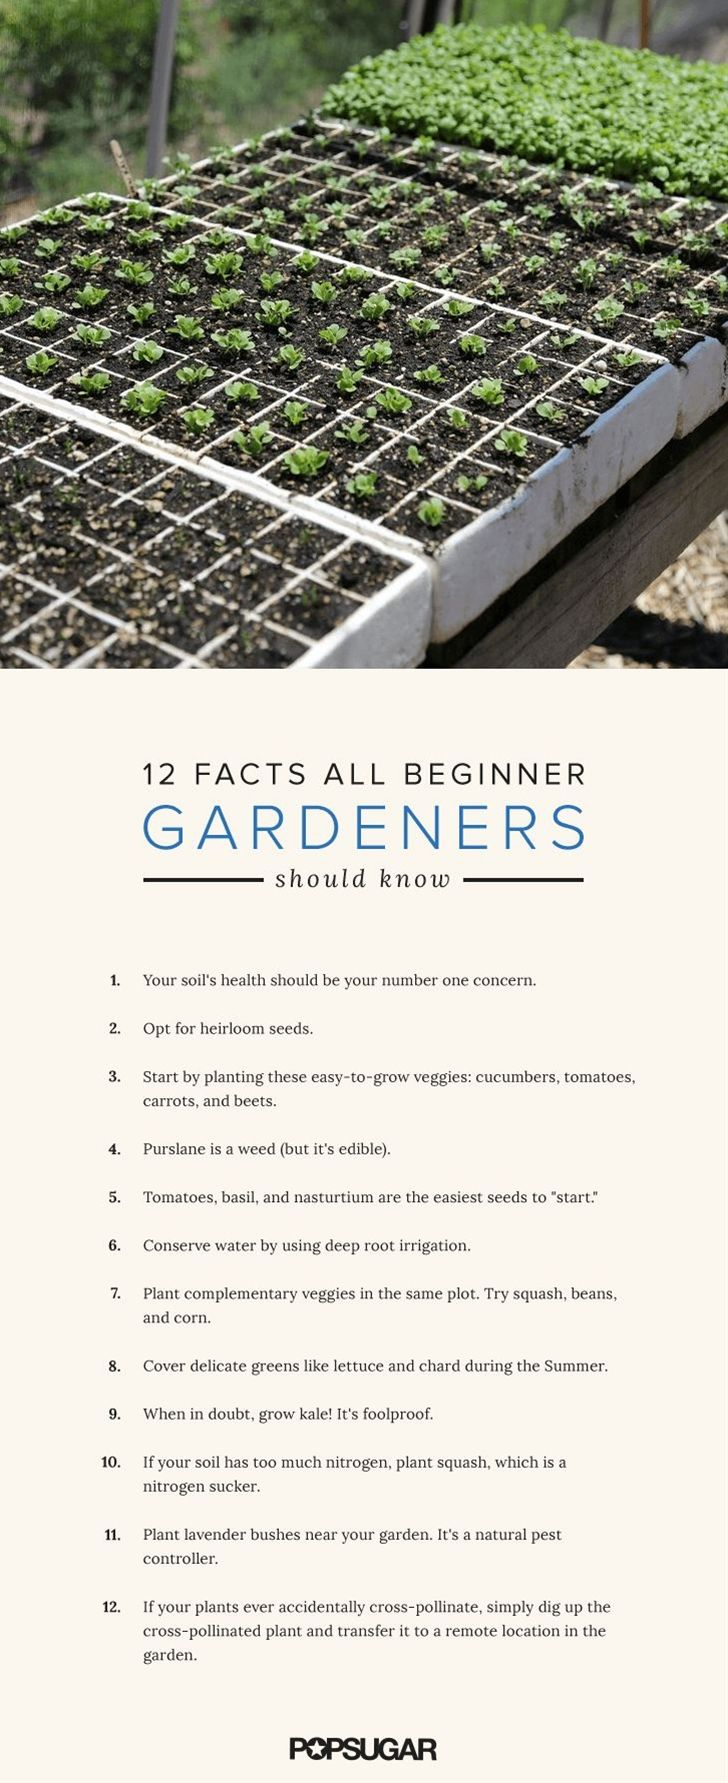 With these 12 tips and tricks, you'll be growing the greenery atop your sandwich…